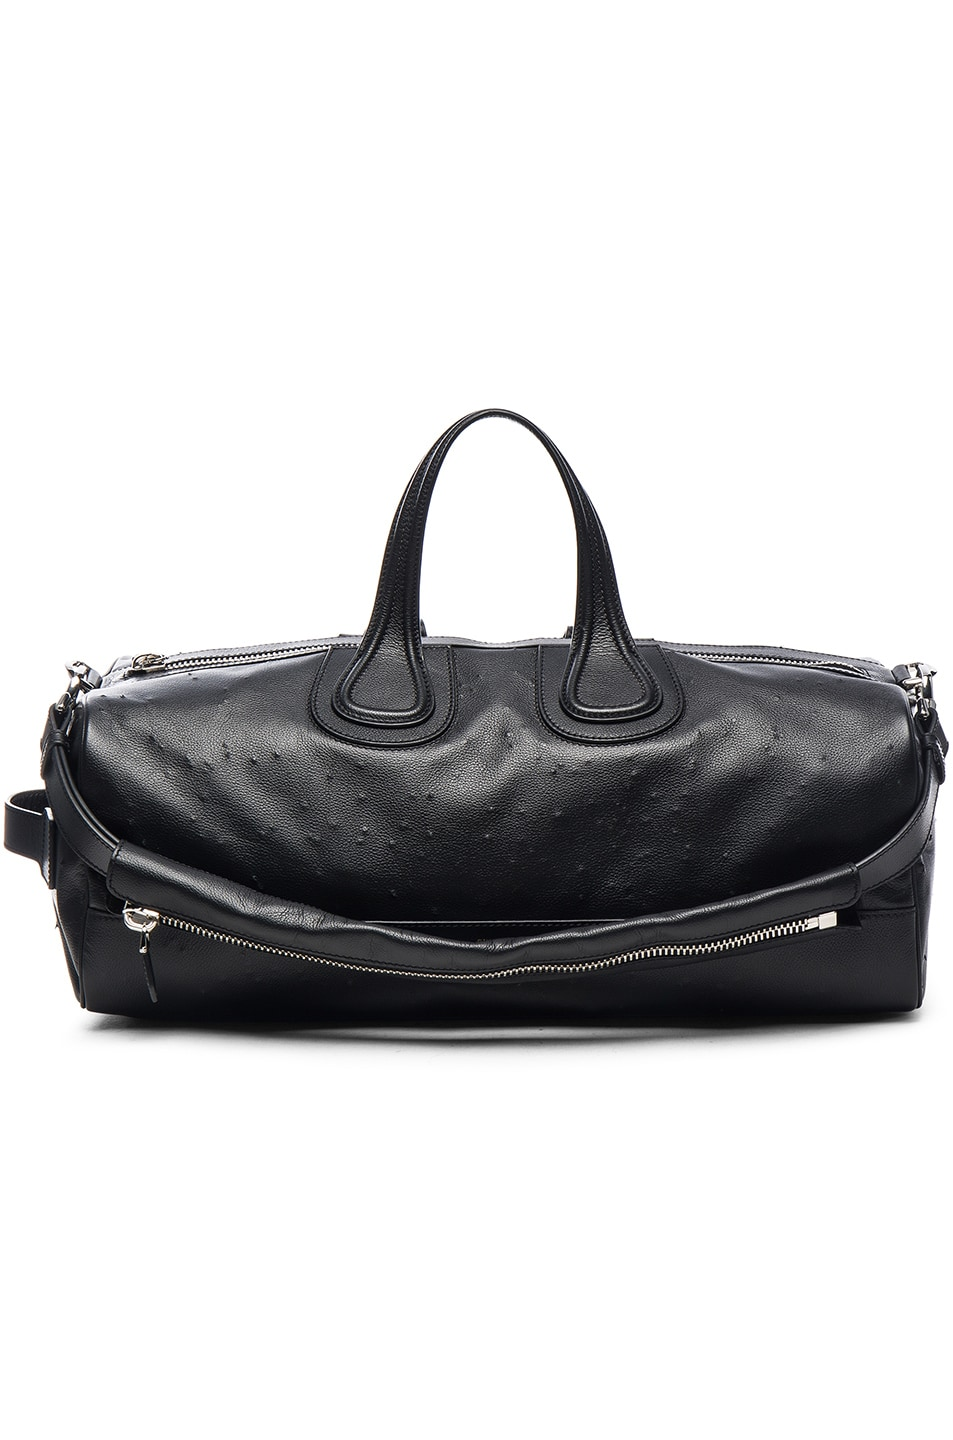 Image 1 of Givenchy Nightingale Duffle Bag in Black